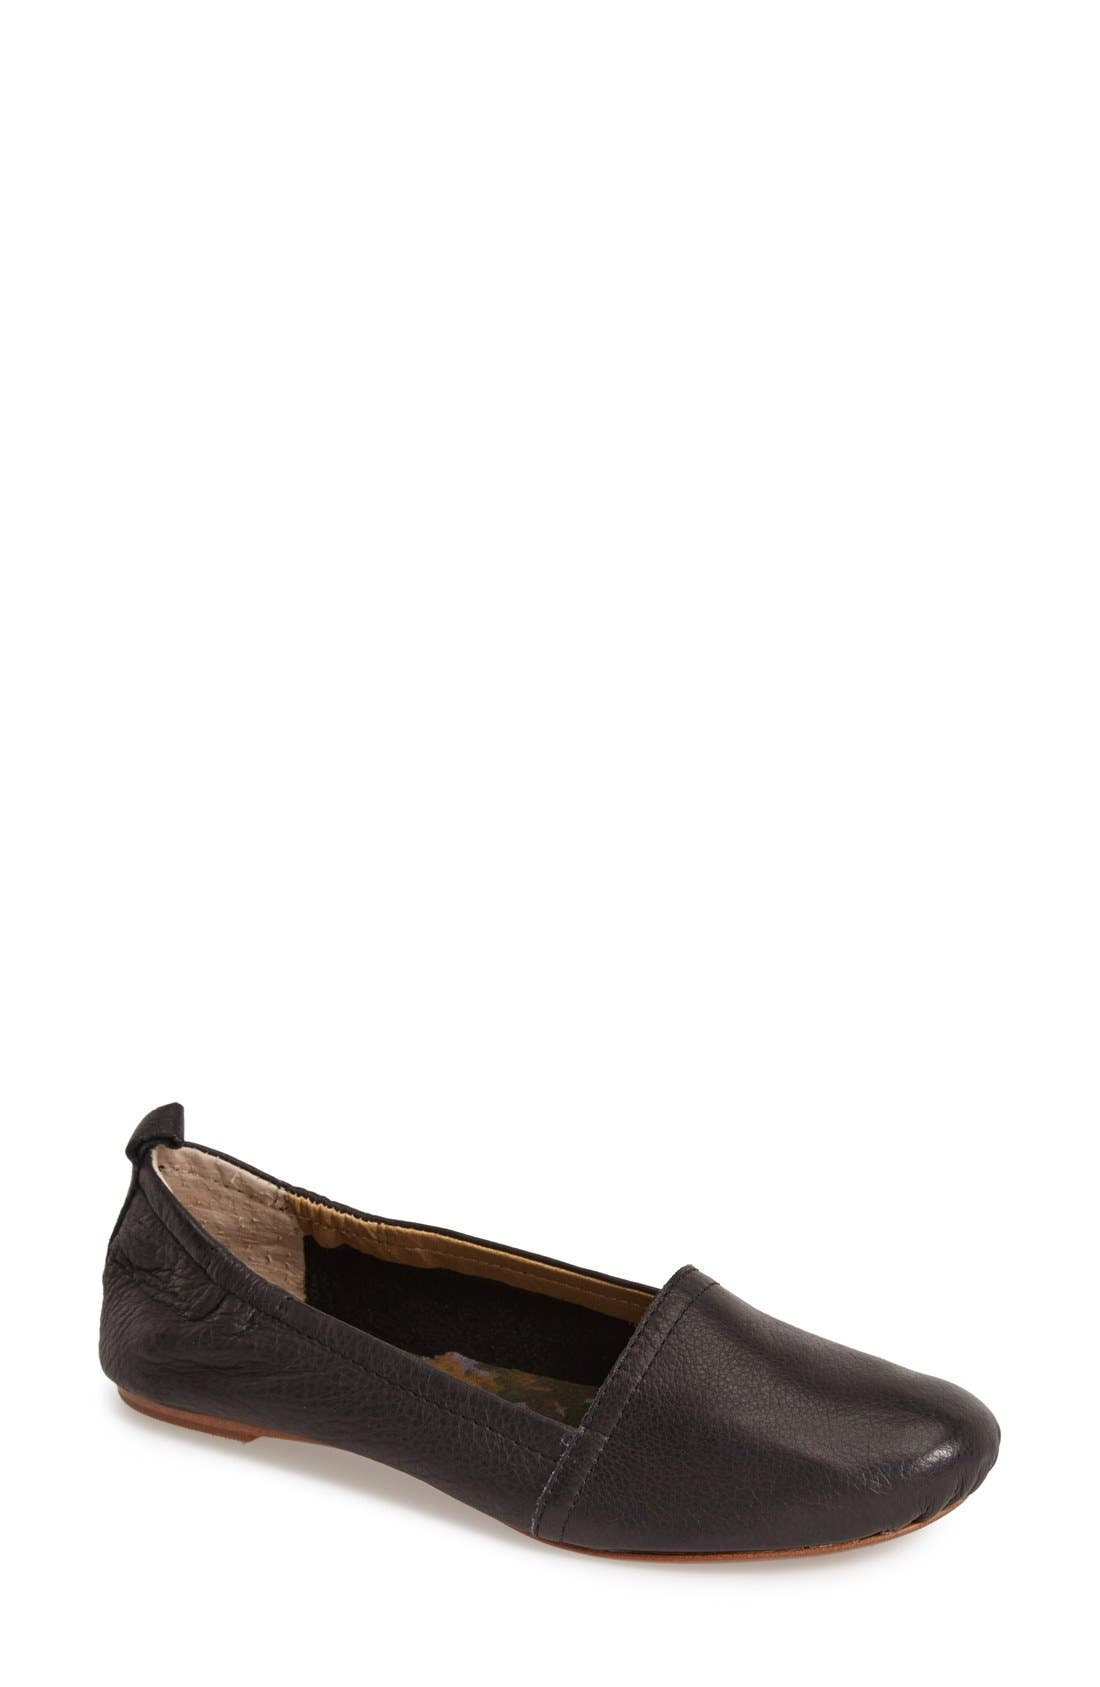 'Bettie' Leather Flat,                         Main,                         color,